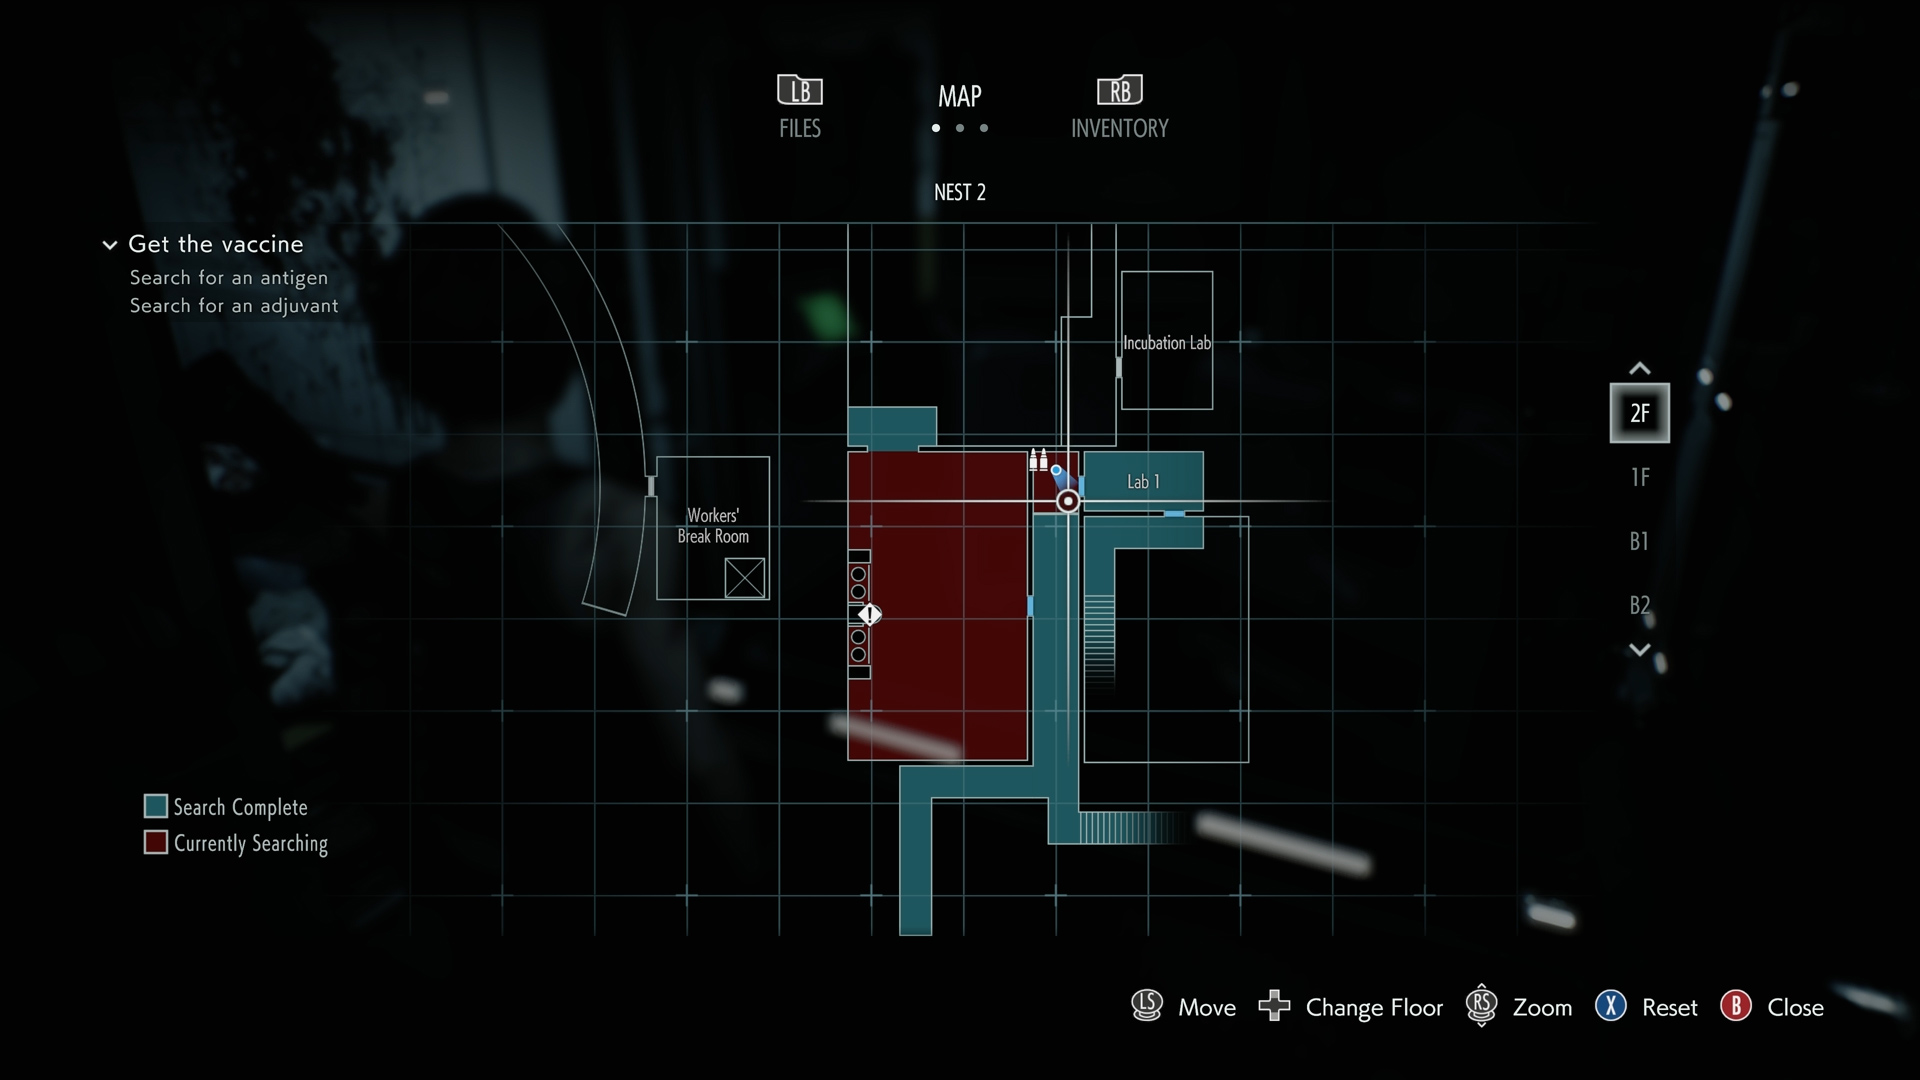 Resident Evil 3 Charlie Doll locations NEST 2 Lab 1 map